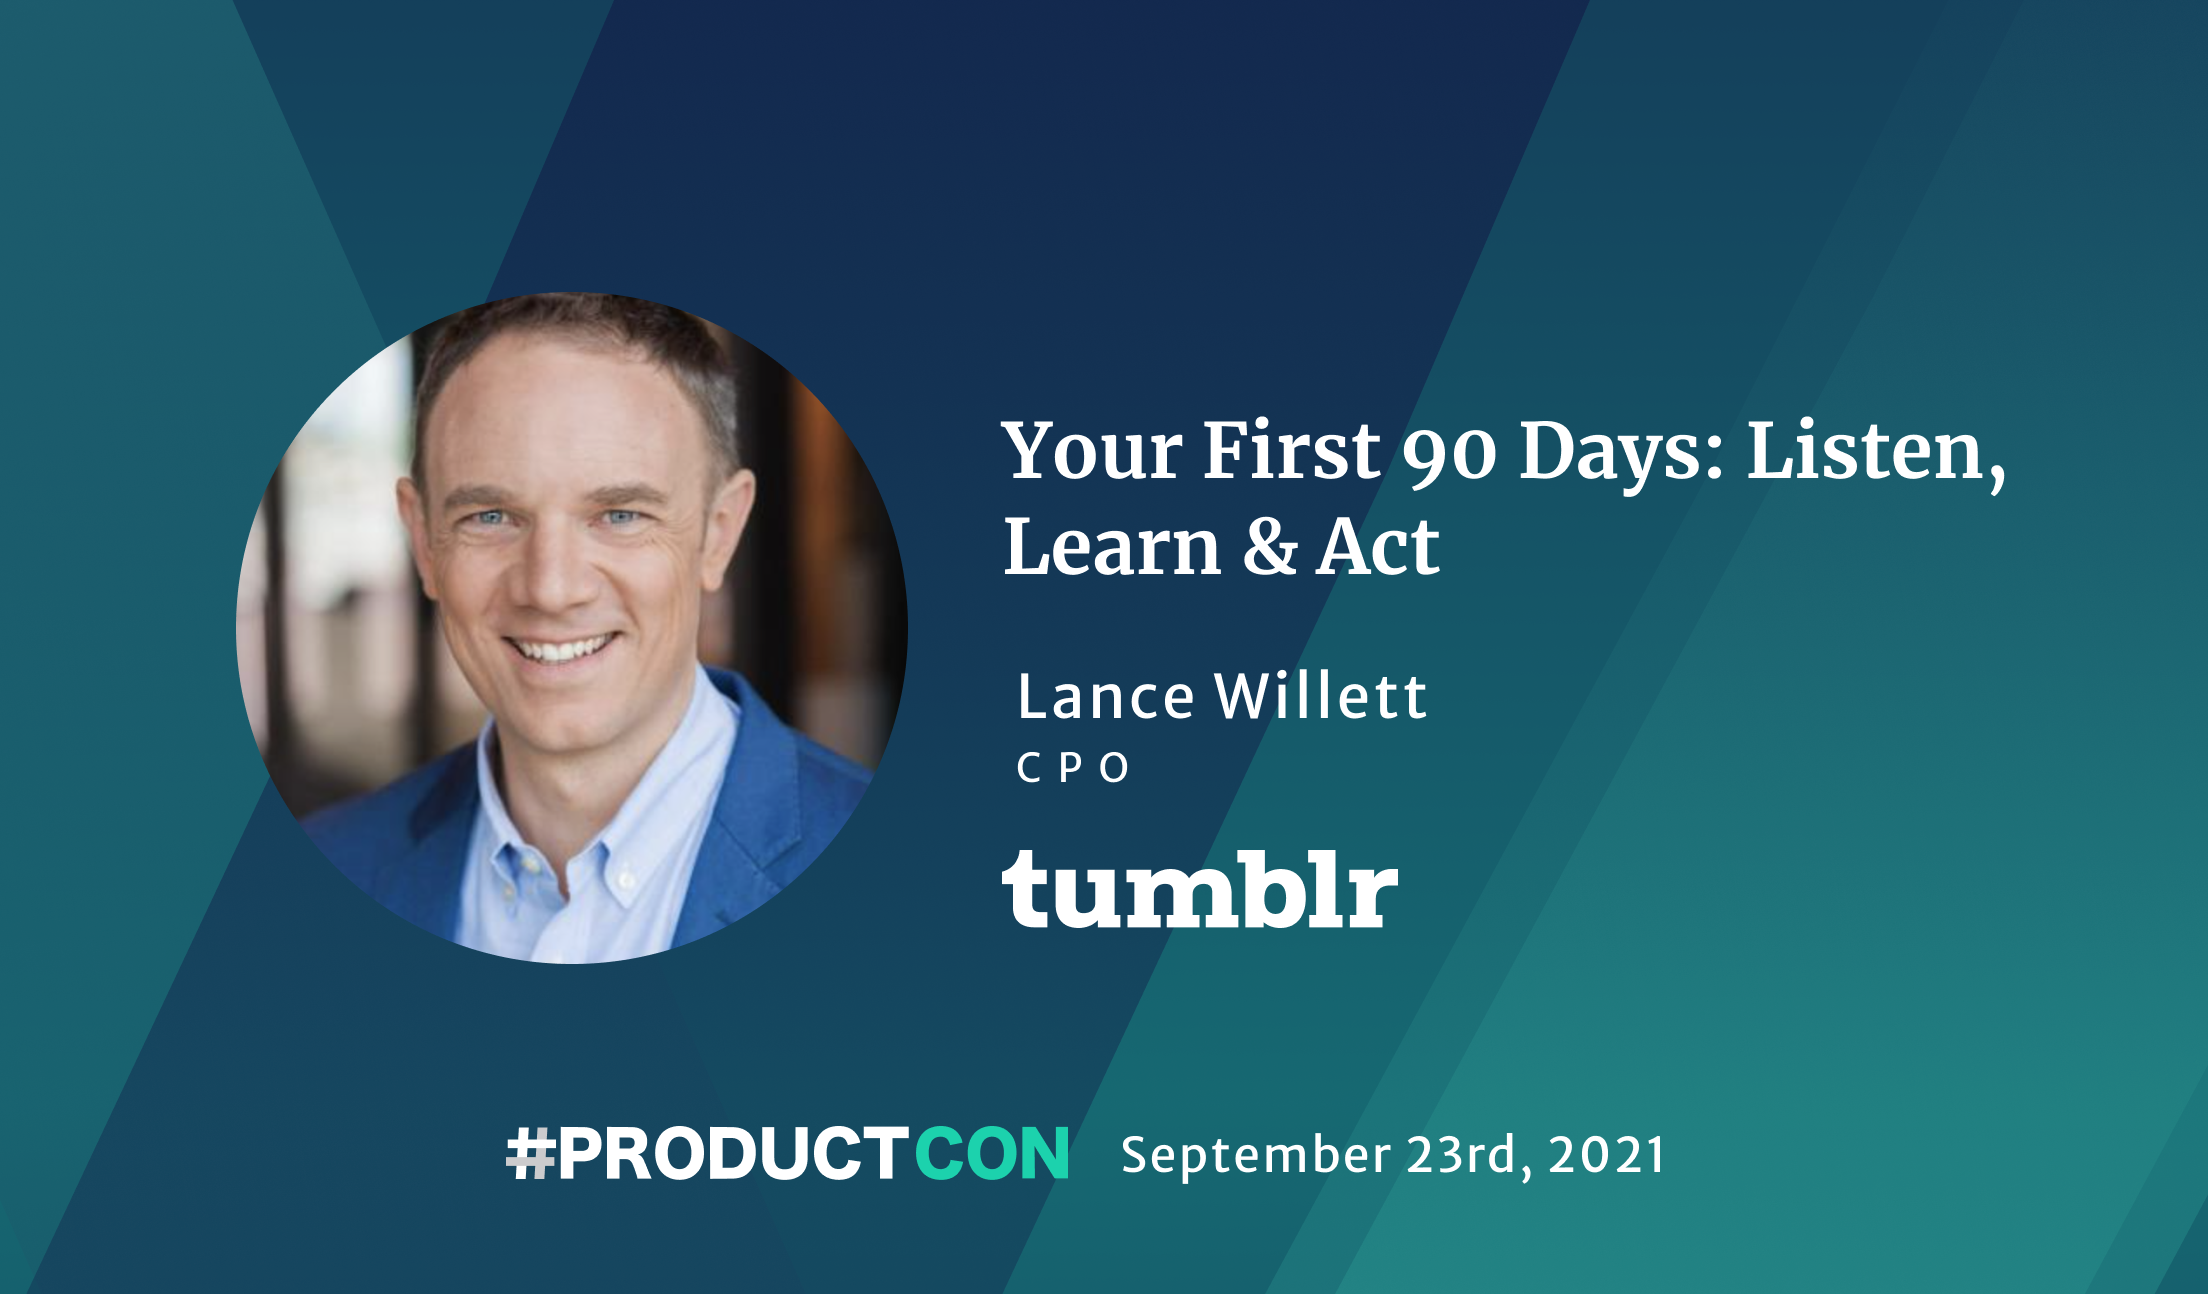 Your First 90 Days: ProductCon